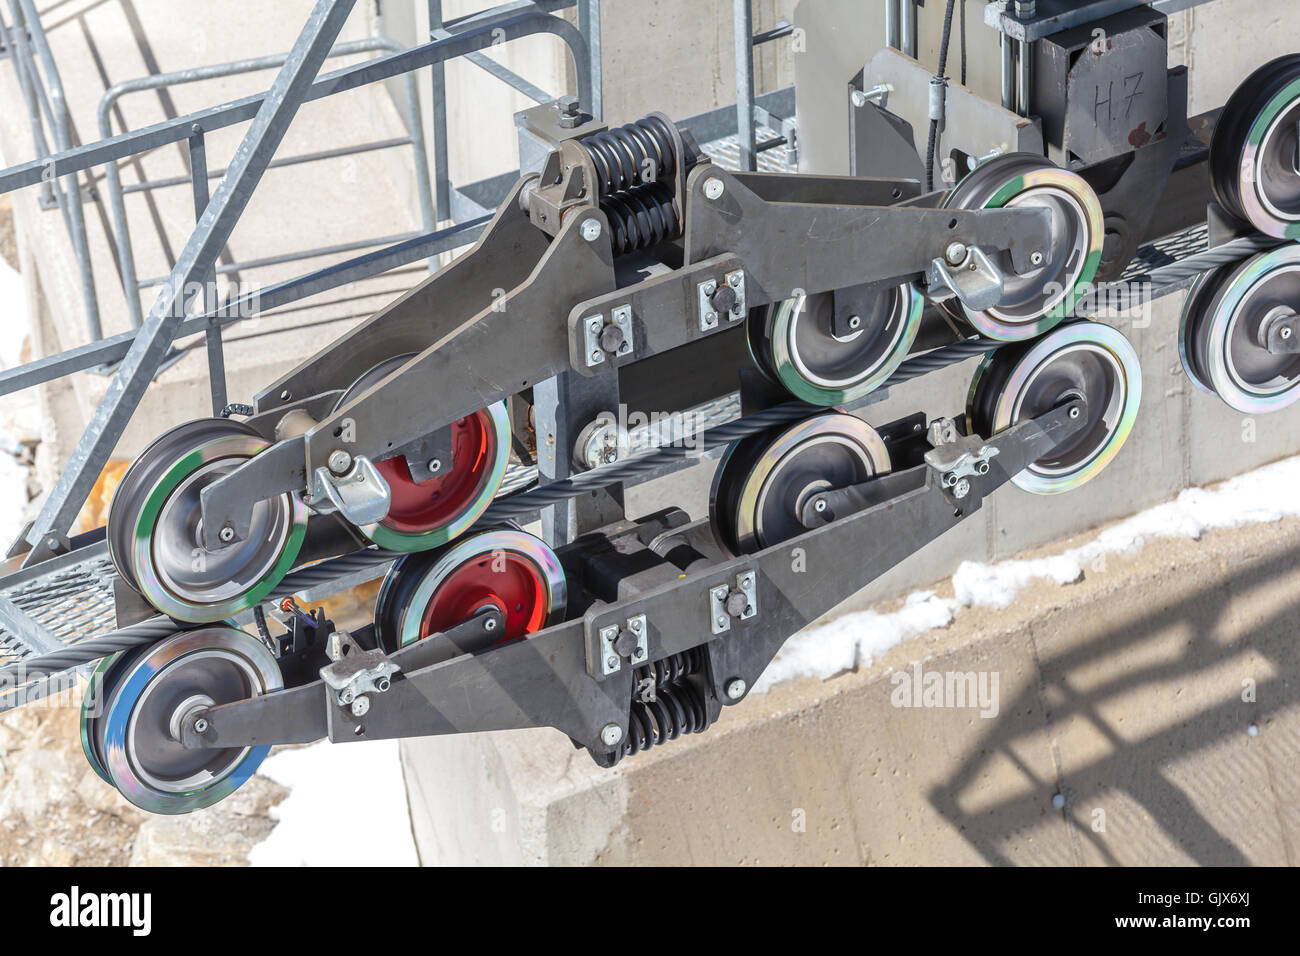 Cable Pulley Stock Photos & Cable Pulley Stock Images - Alamy